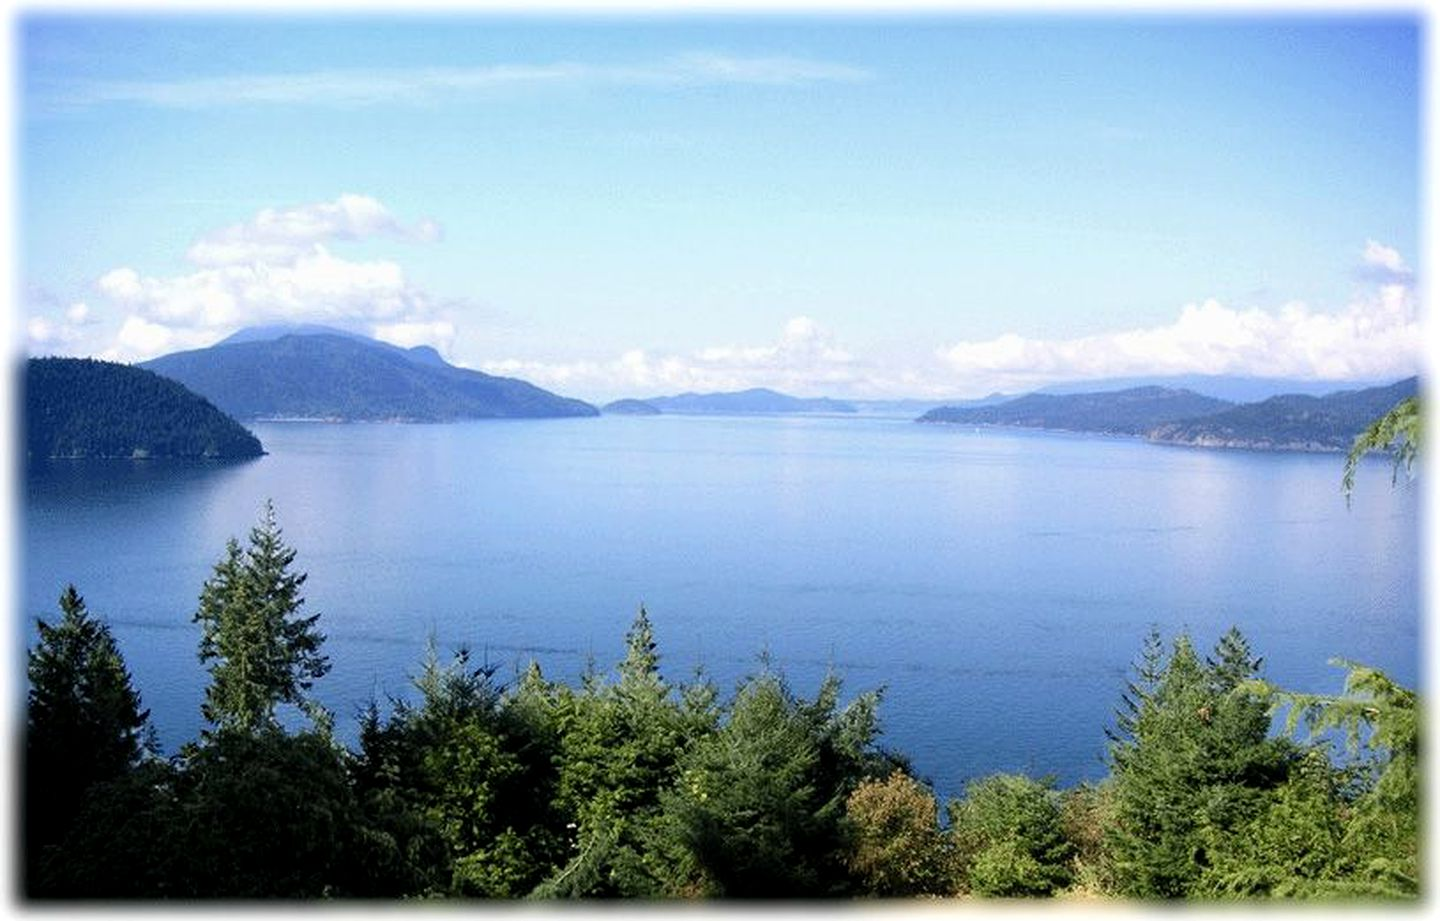 Cabins (Lions Bay, British Columbia, Canada)